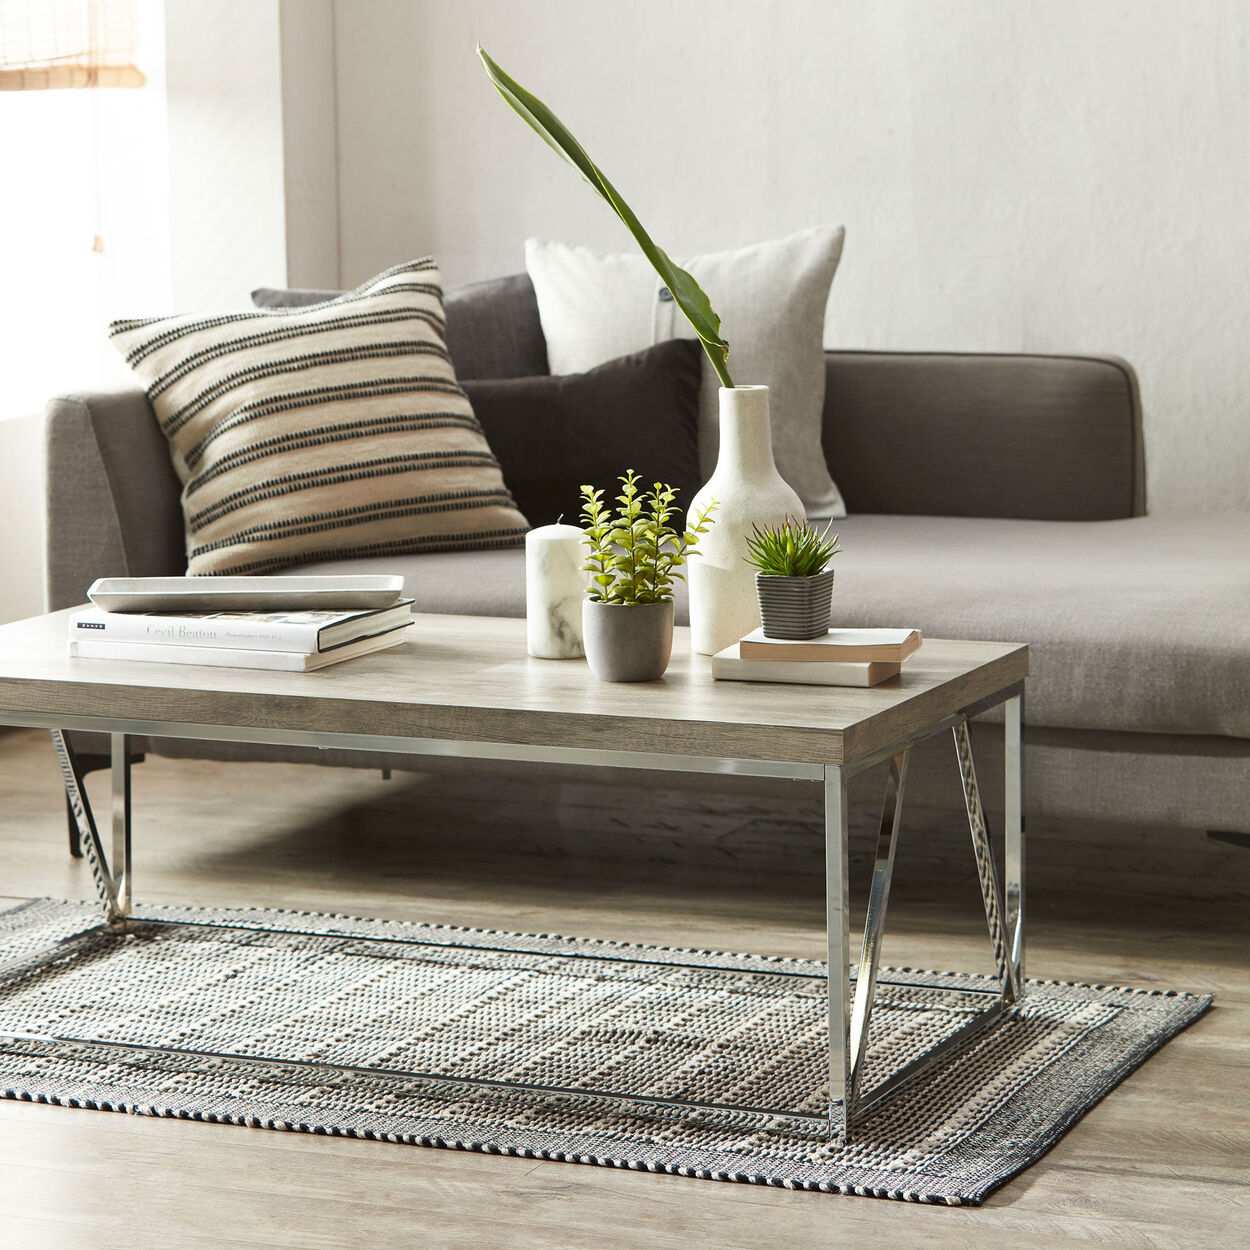 Laminated Wood and Chrome Coffee Table